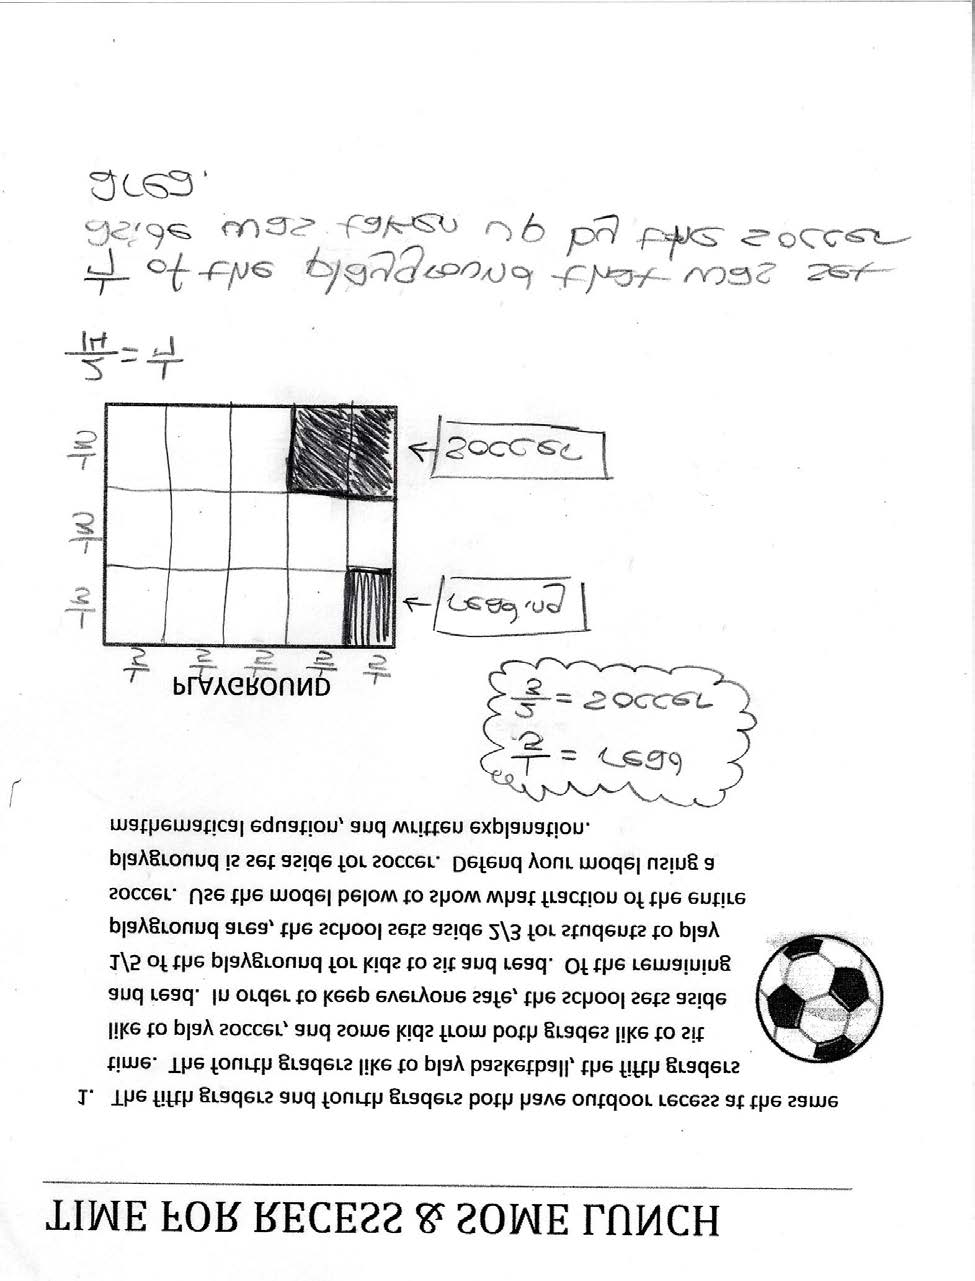 Grade 5 Math: Time for Recess Annotated Student Work: Level 2 Teacher Note: The student finds and incorrect area of a rectangle with fractional sides by tiling with appropriate